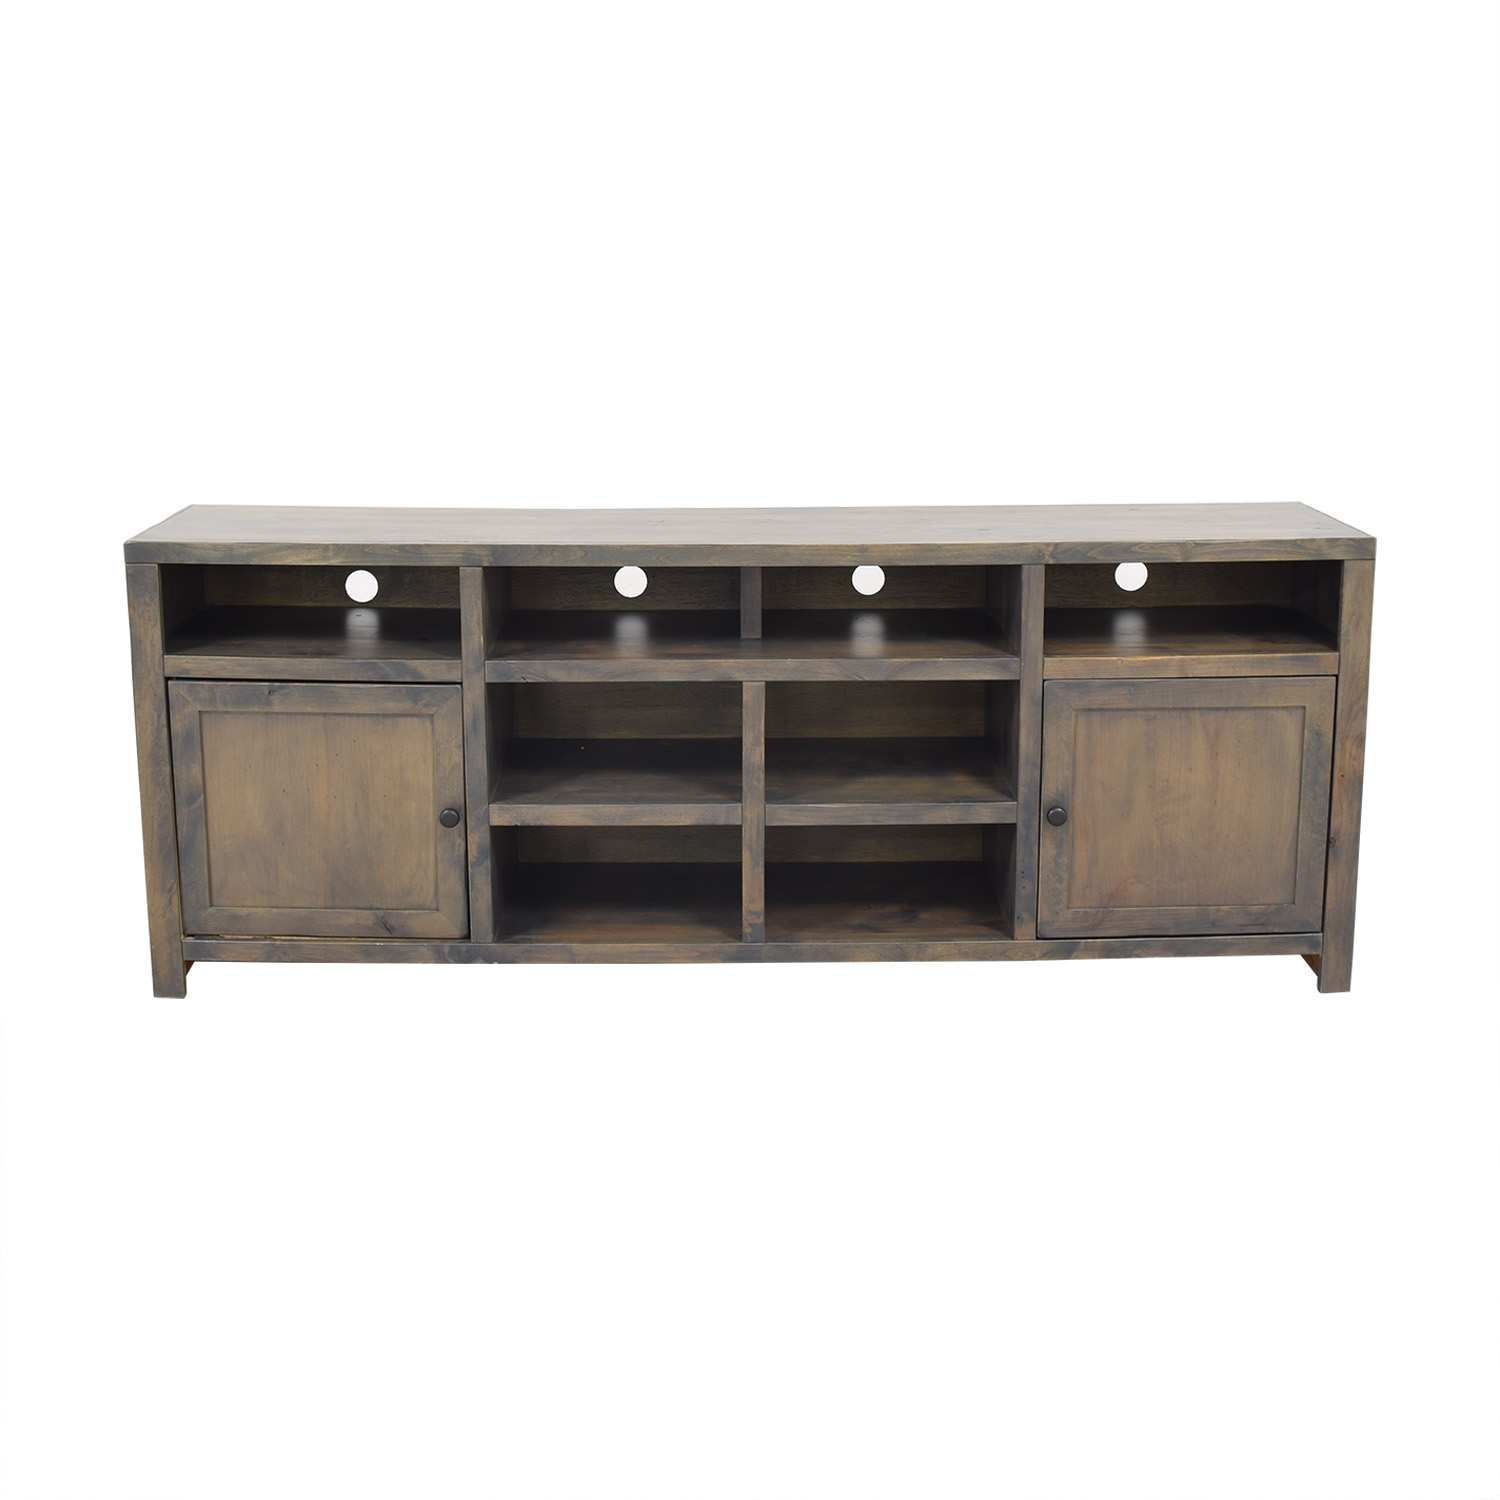 Legends Furniture Joshua Creek Super Console sale